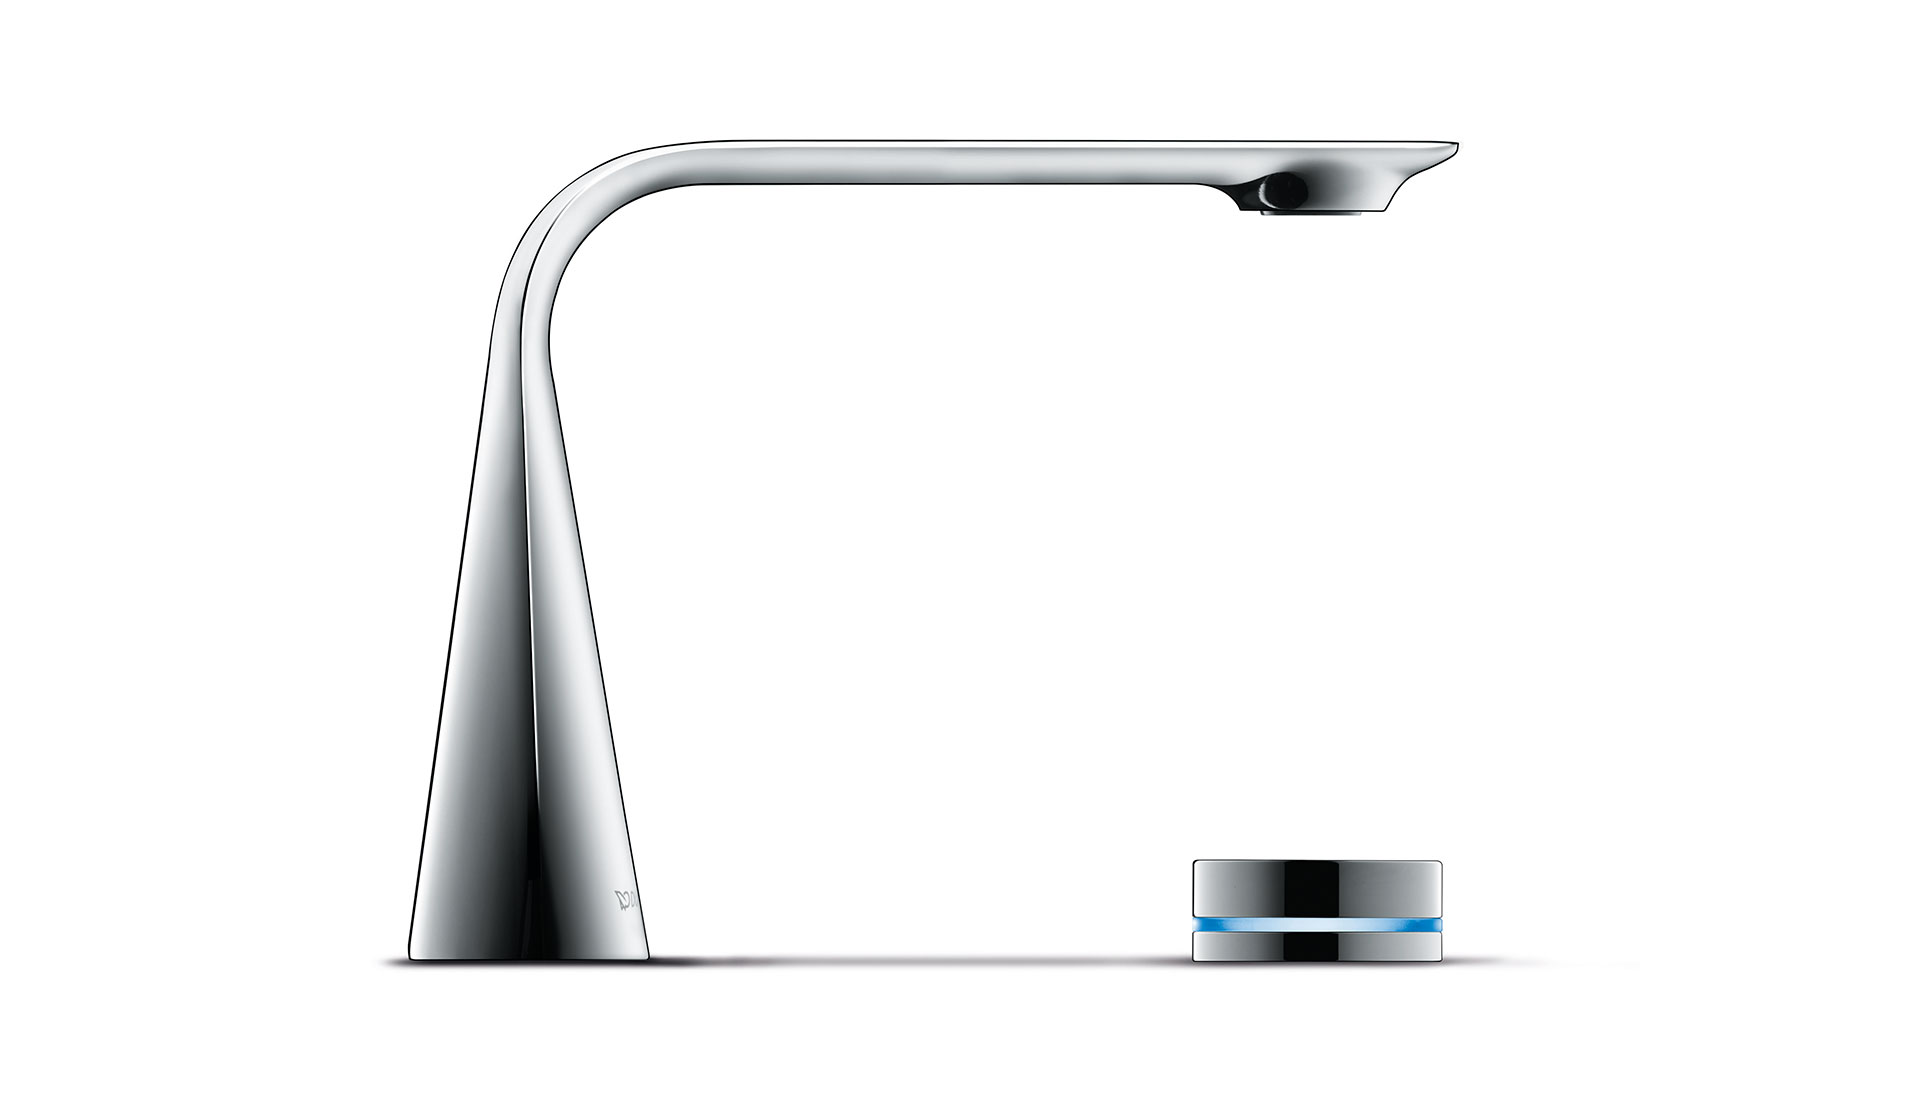 Faucet Collection, D1 for Duravit